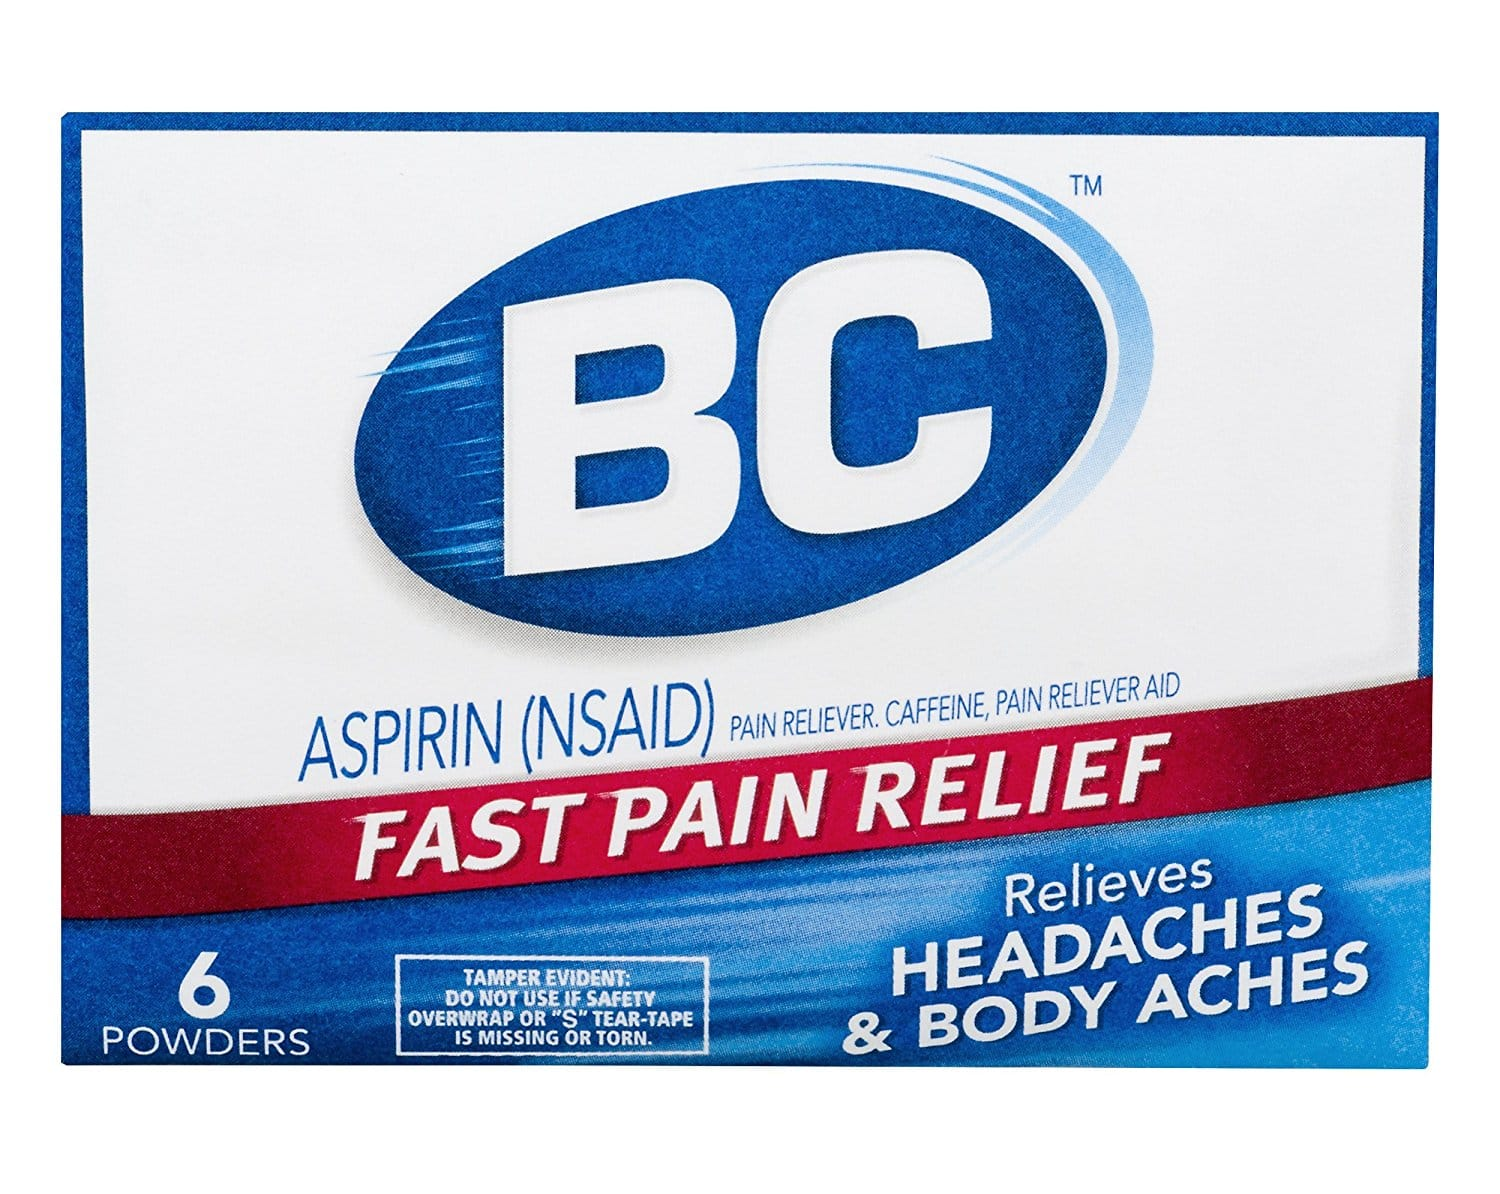 Cheap S&S Item at Amazon:  BC Aspirin Fast Pain Relief Powder  - 6 Powders: As low as $0.56 + FS